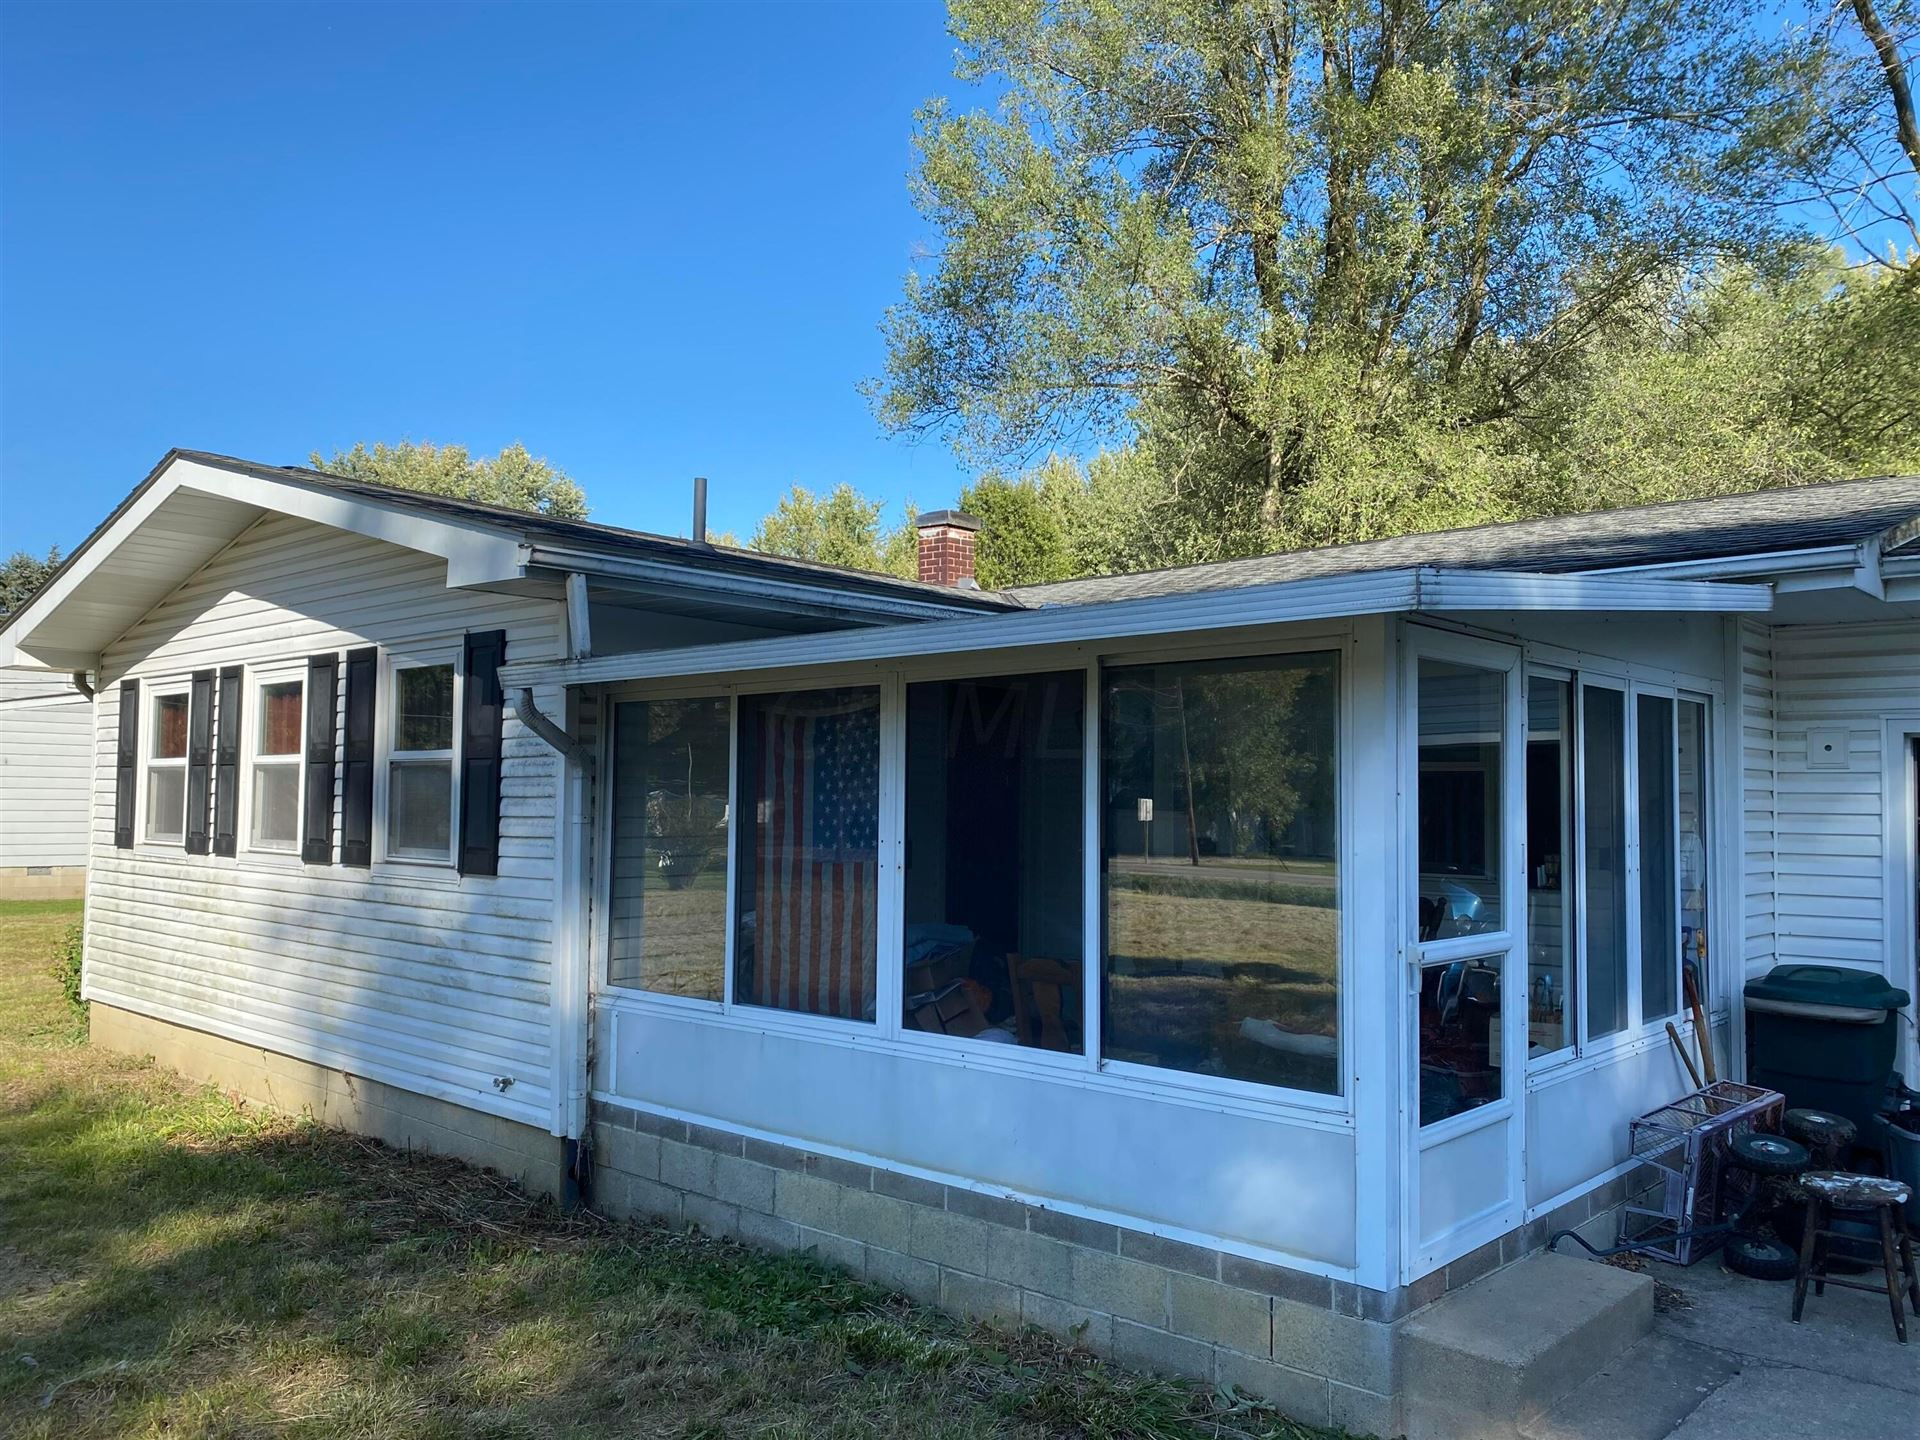 Photo of 3543 State Route 605, Galena, OH 43021 (MLS # 221040531)